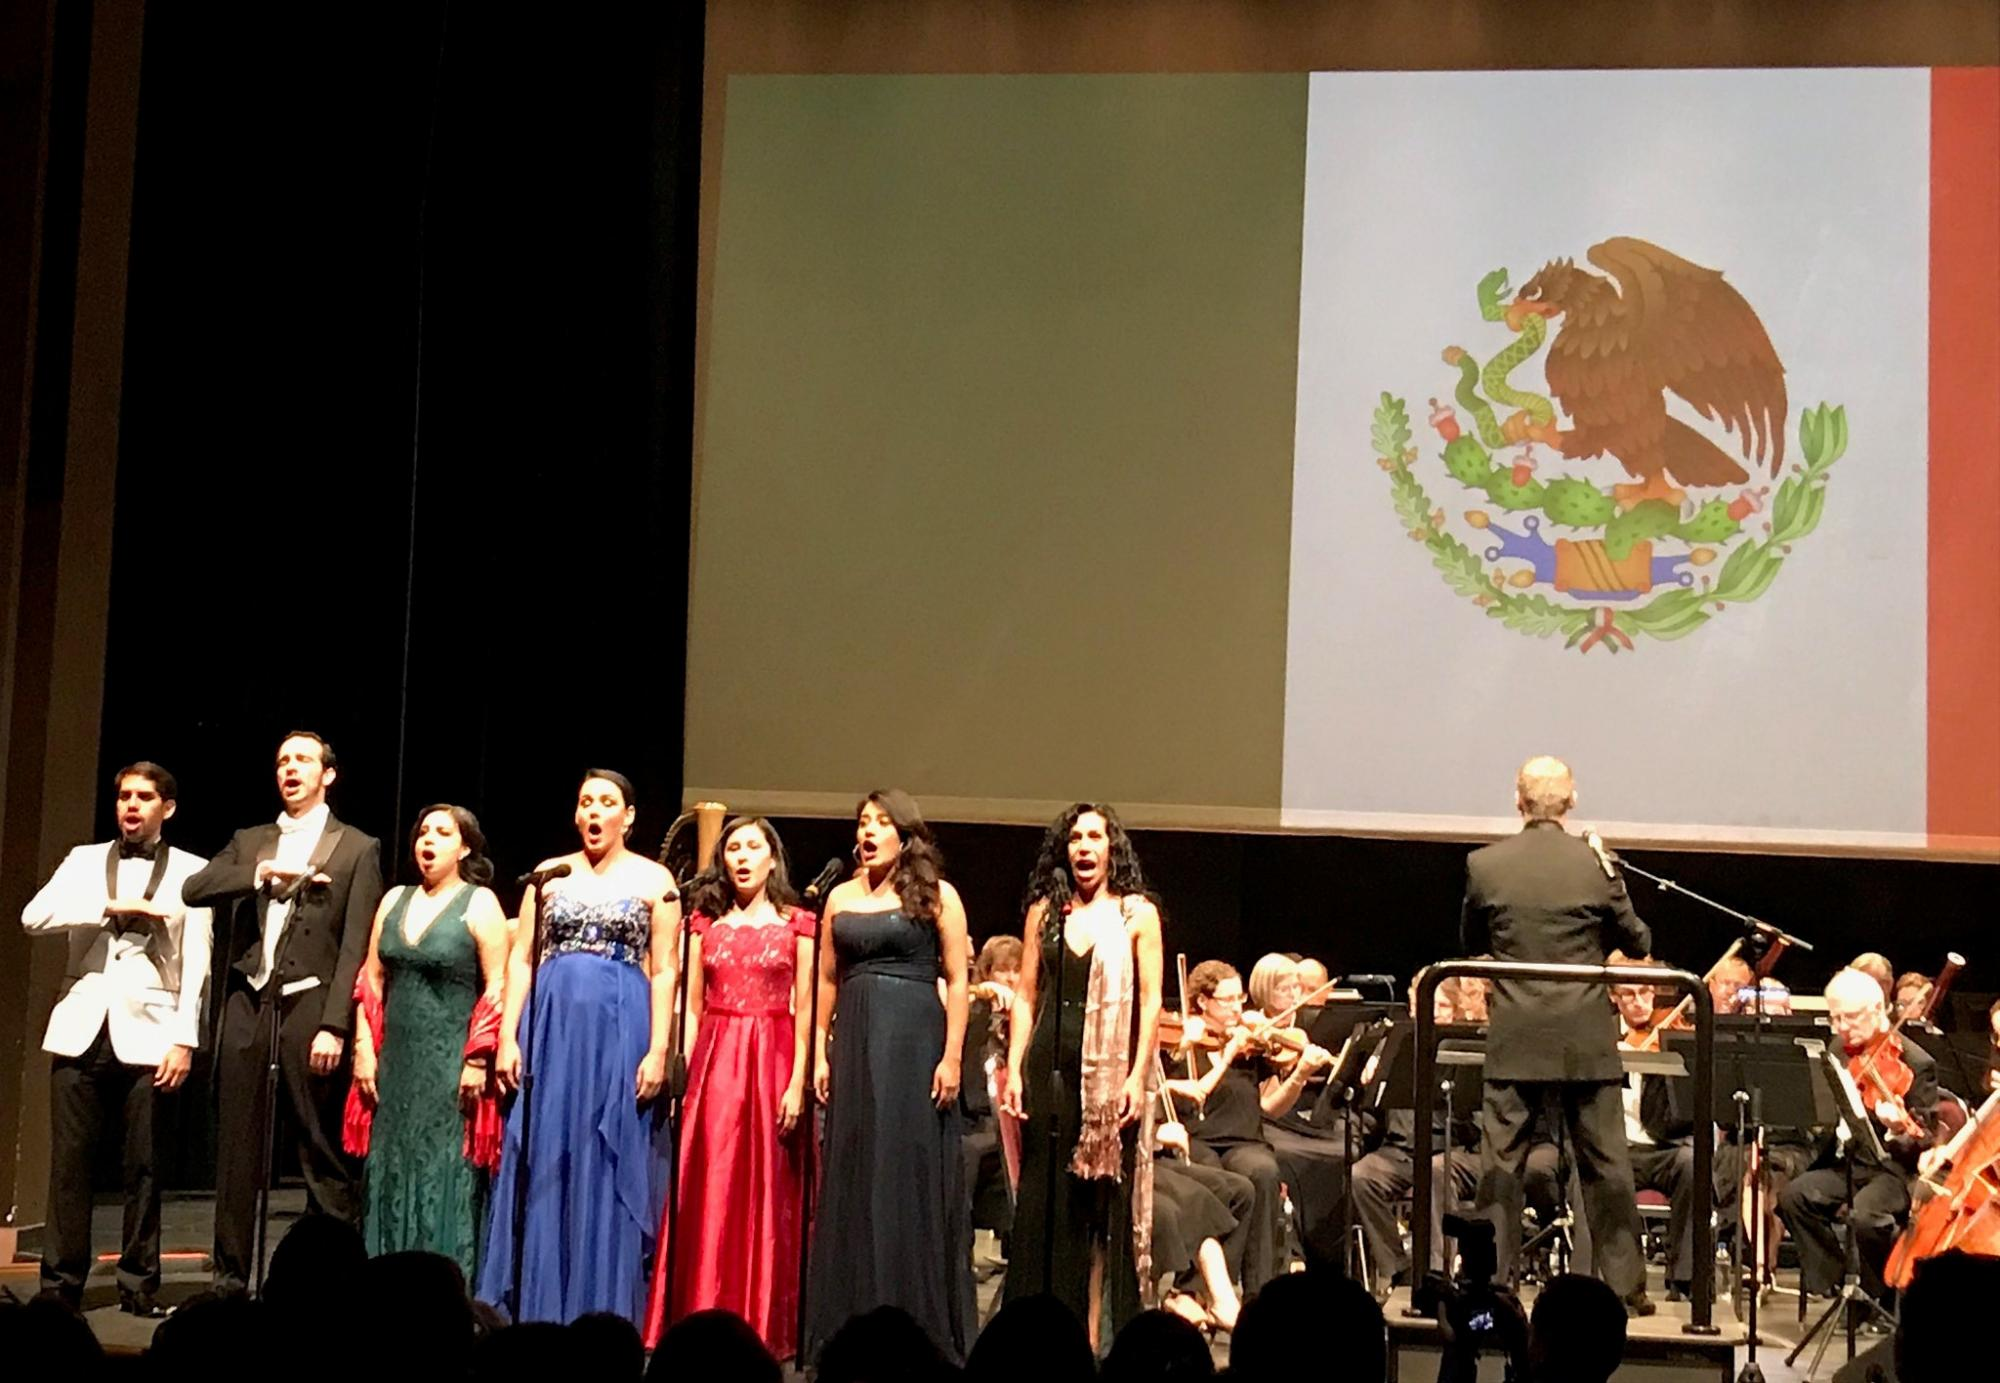 Singing of the Mexican National Anthem at a concert